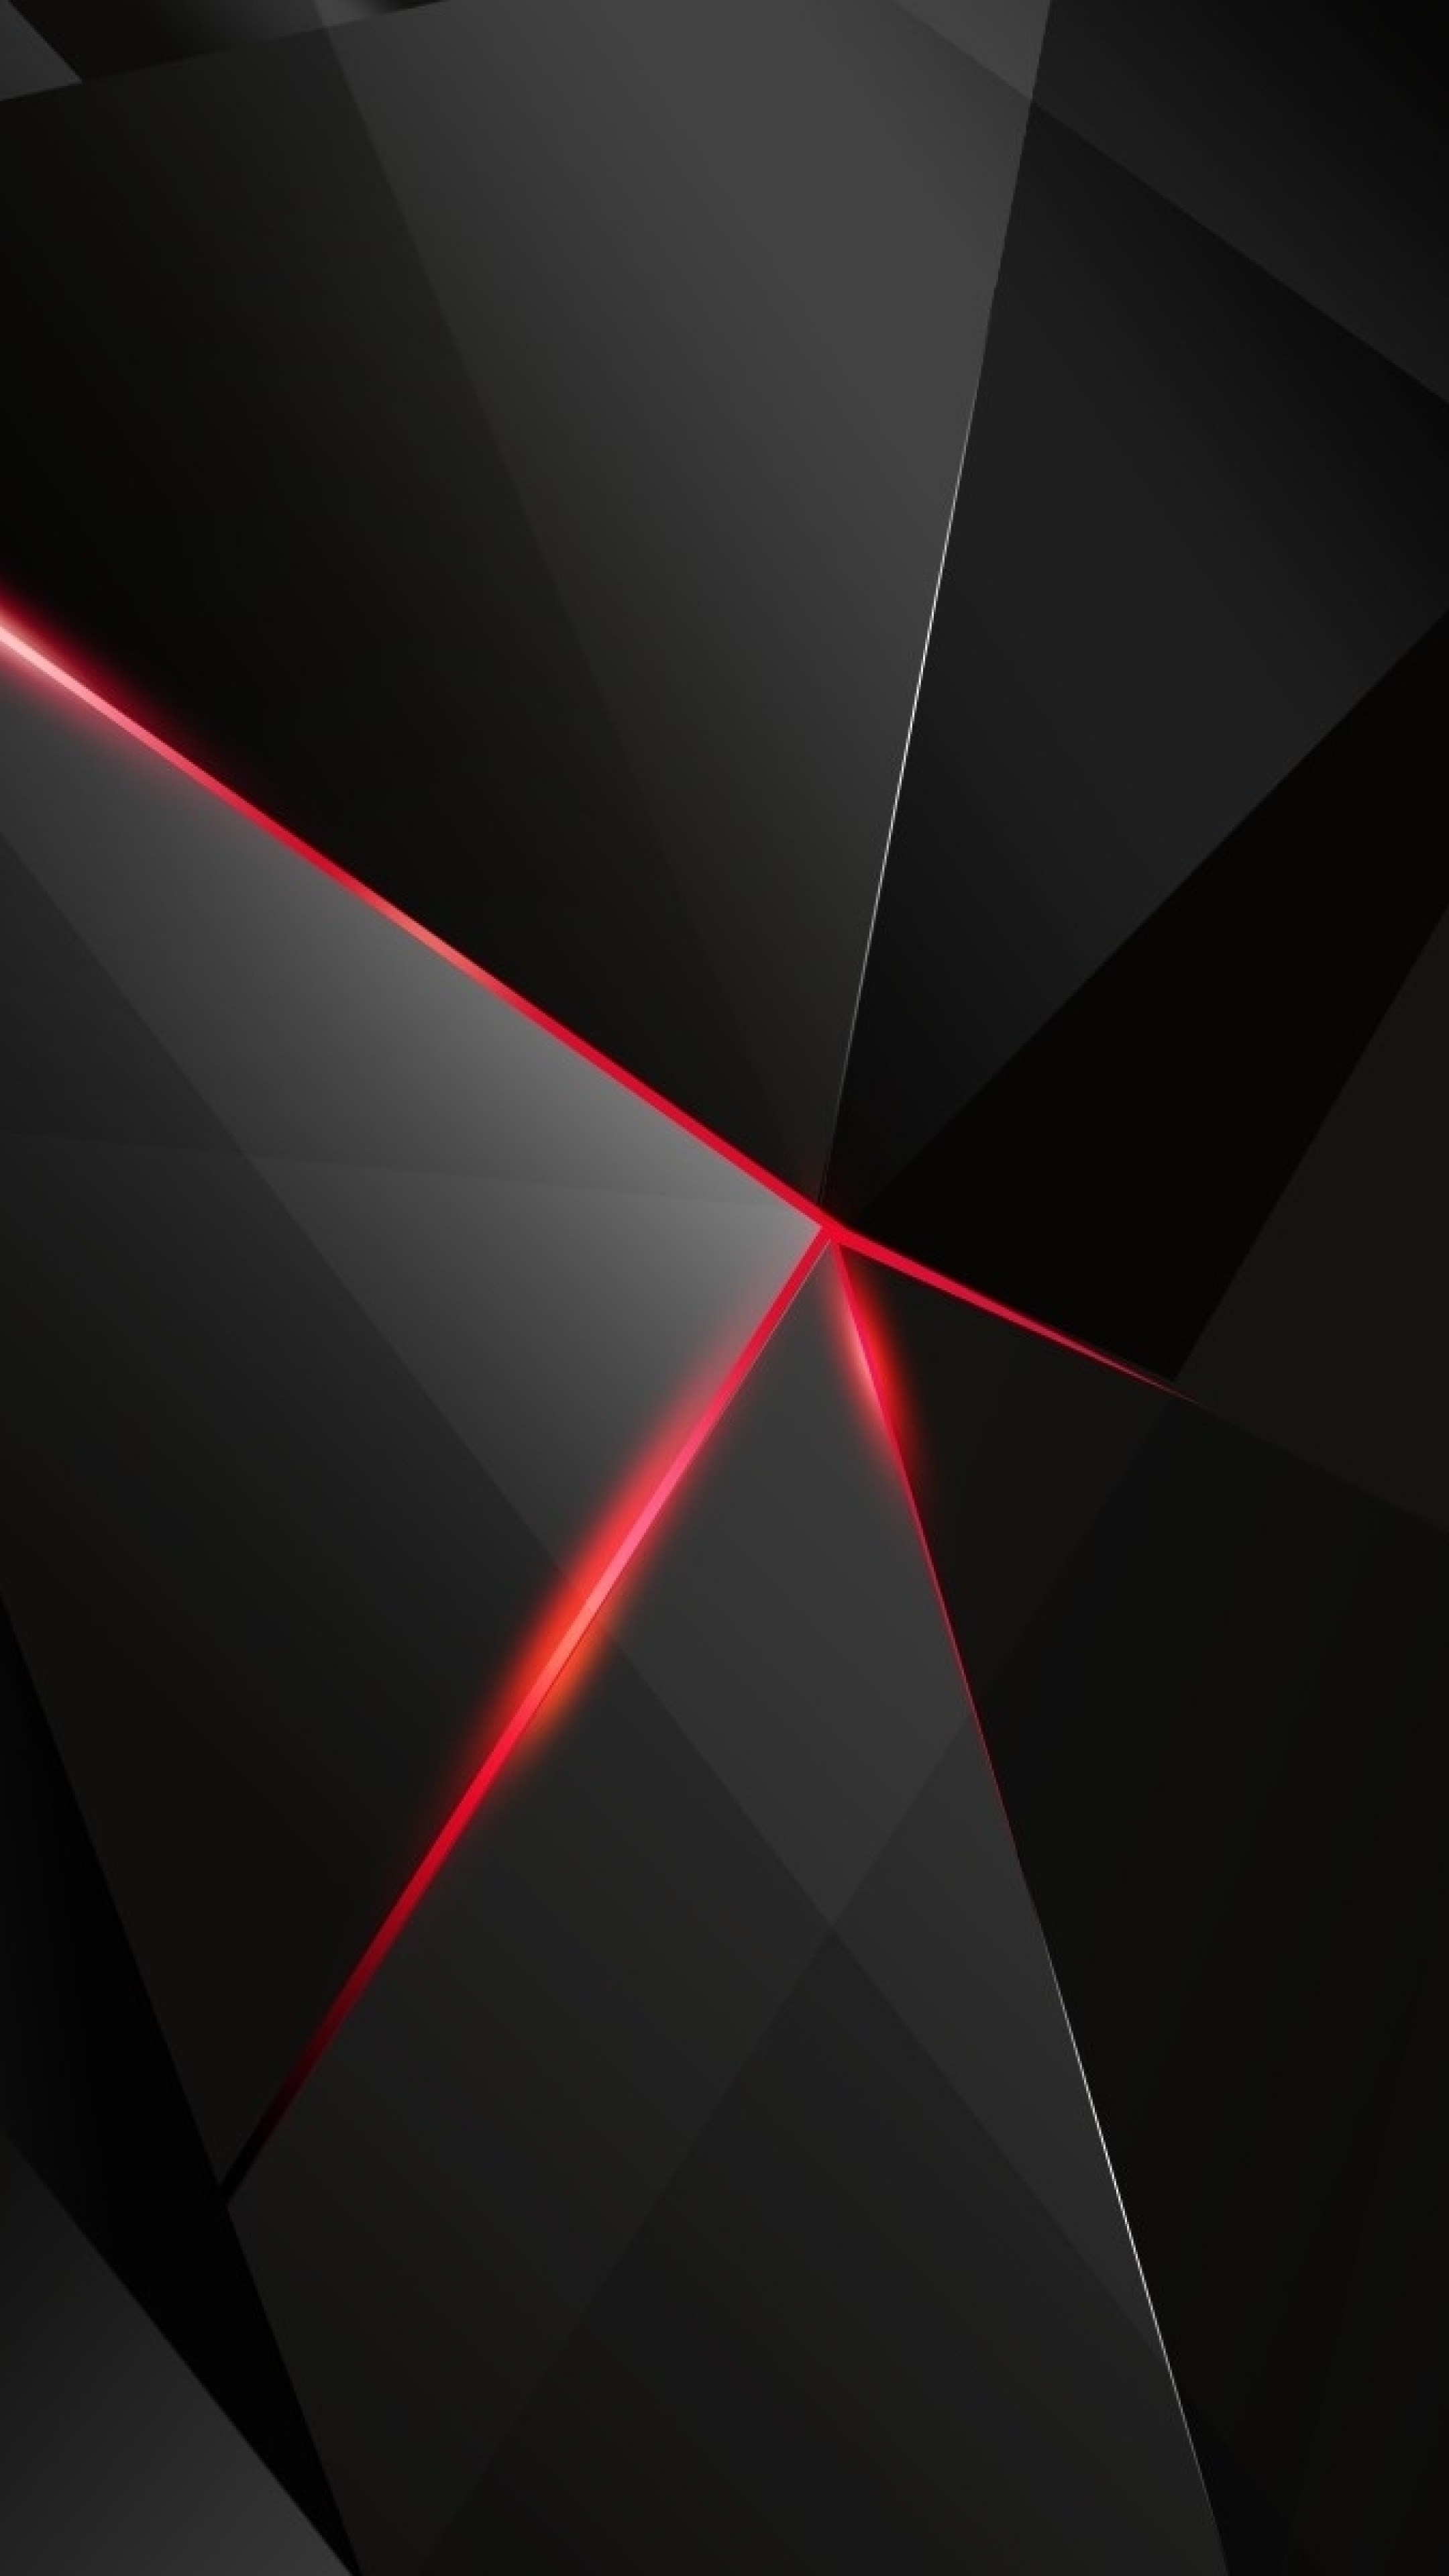 Sony Xperia Z Wallpapers Posted By John Johnson